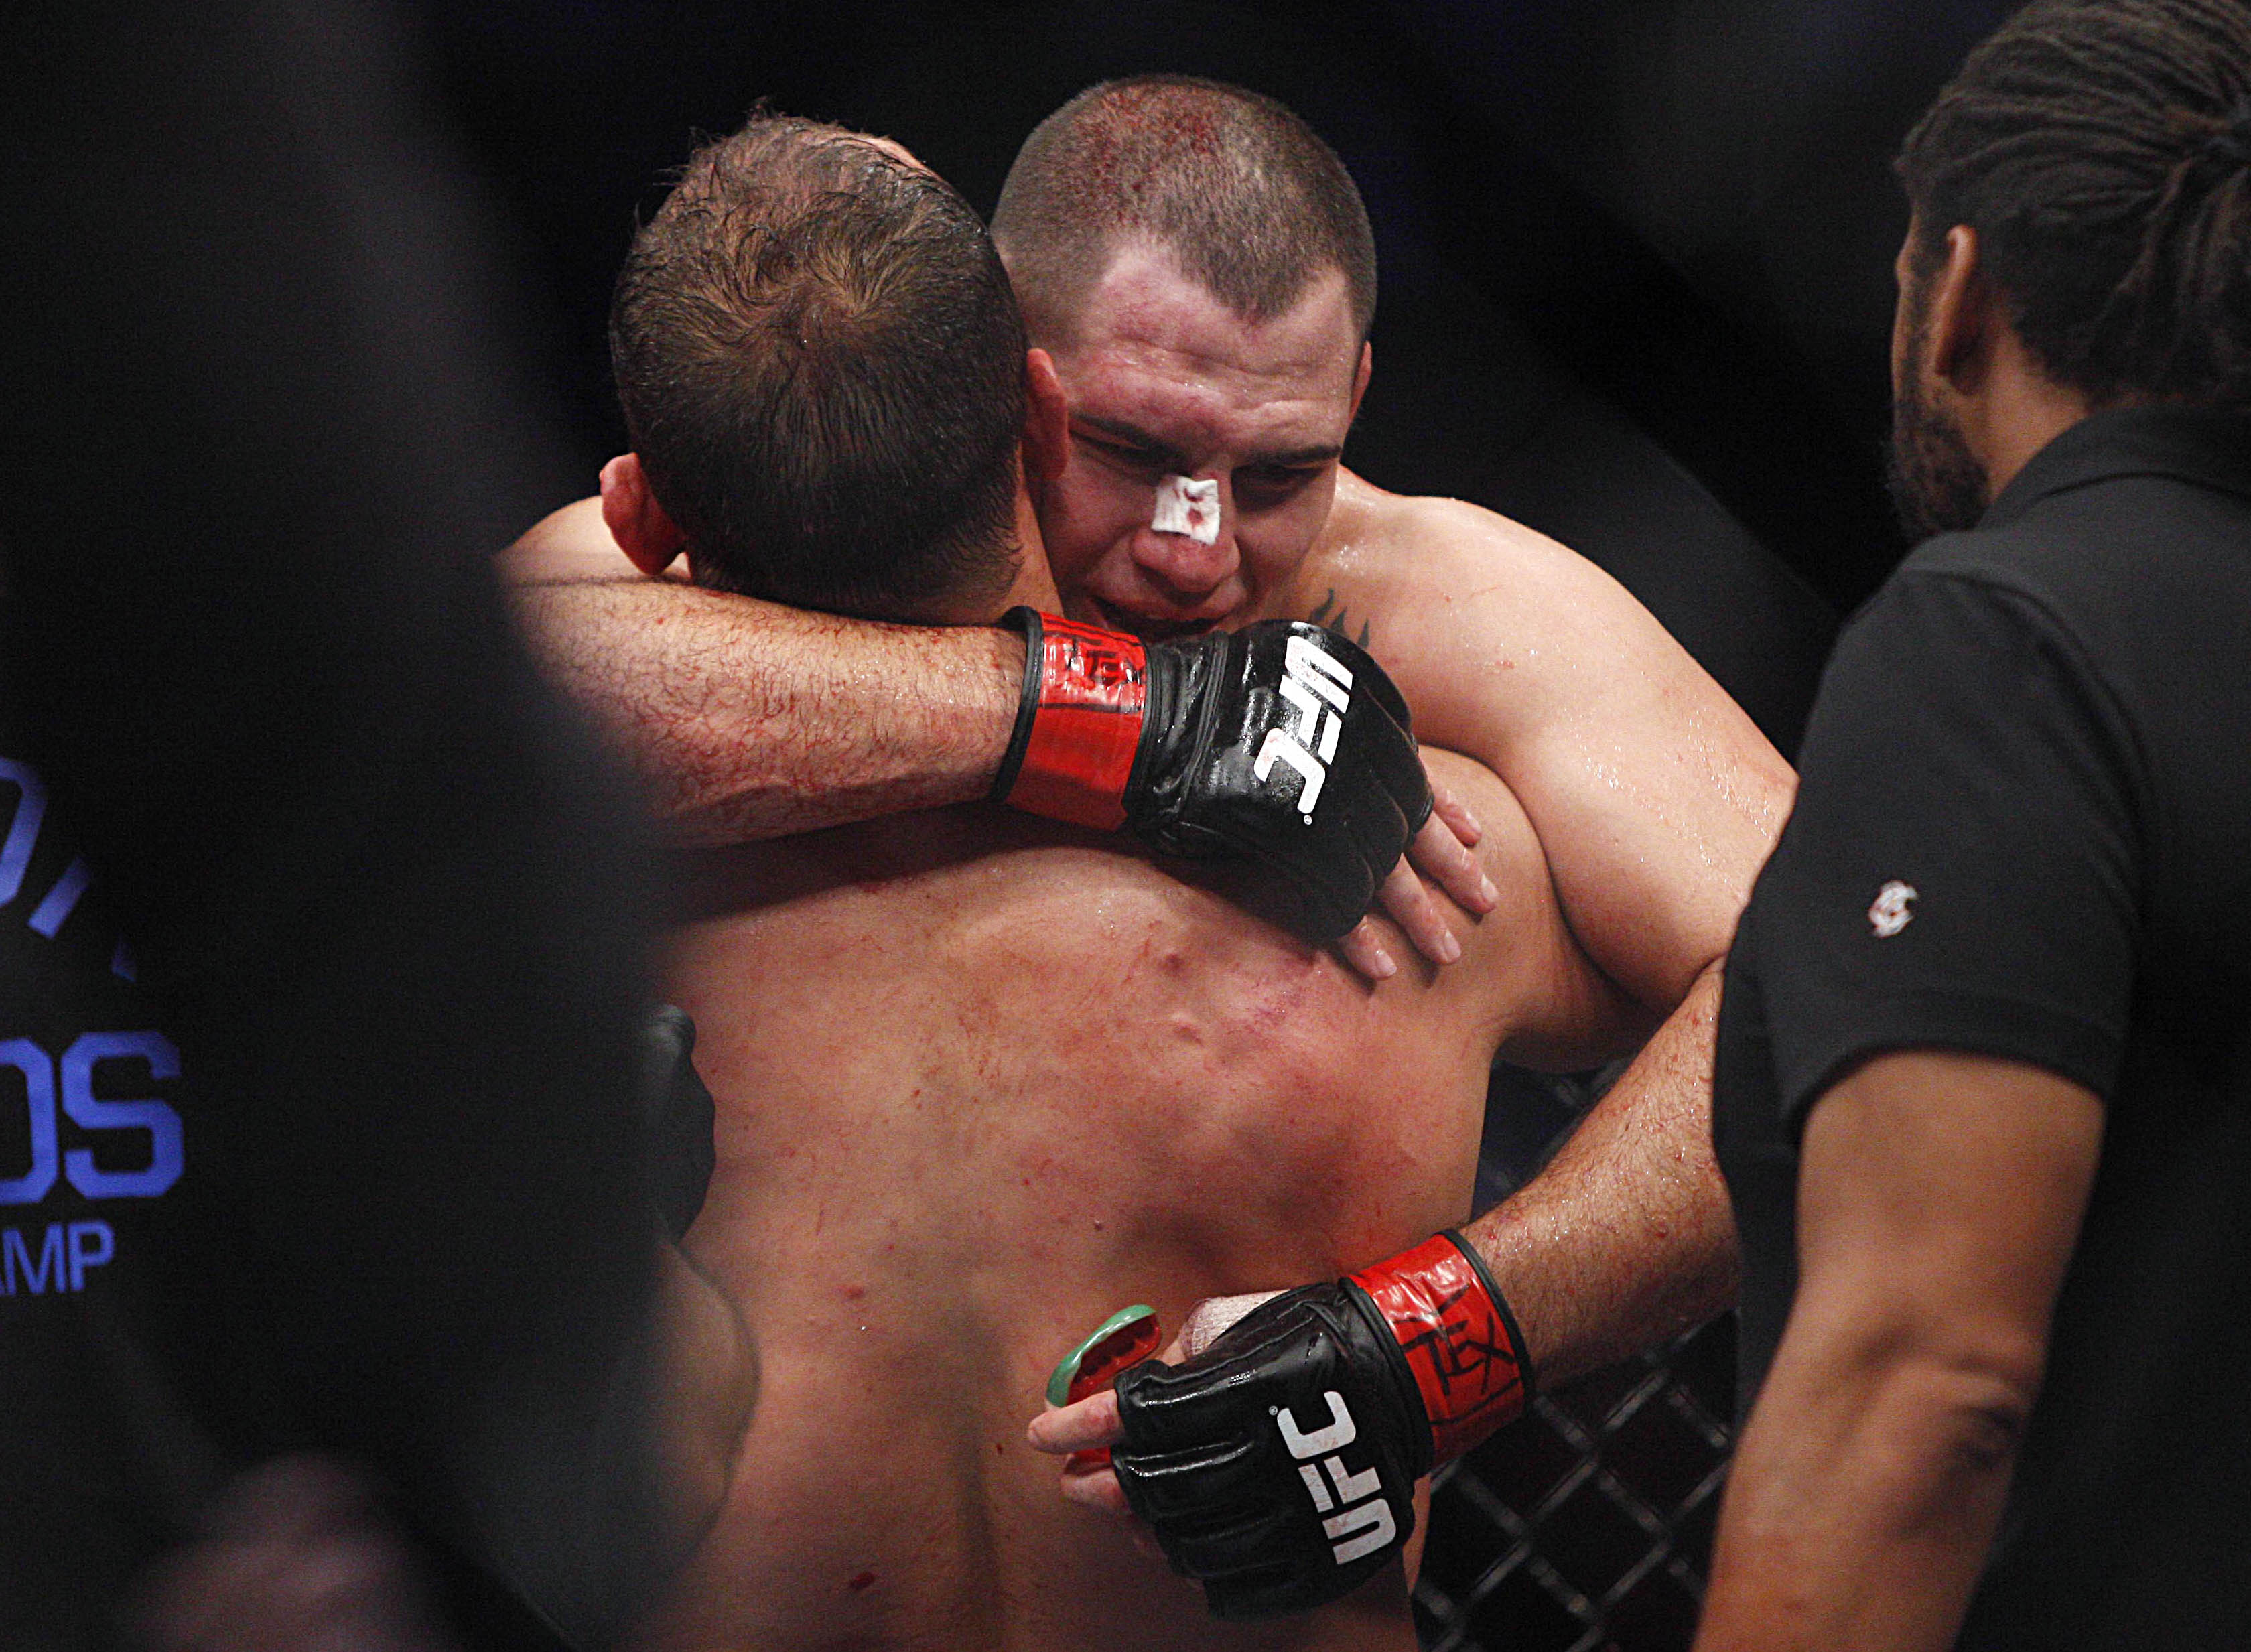 Cain Velasquez embraces Junior Dos Santos after their fight. (USA Today)